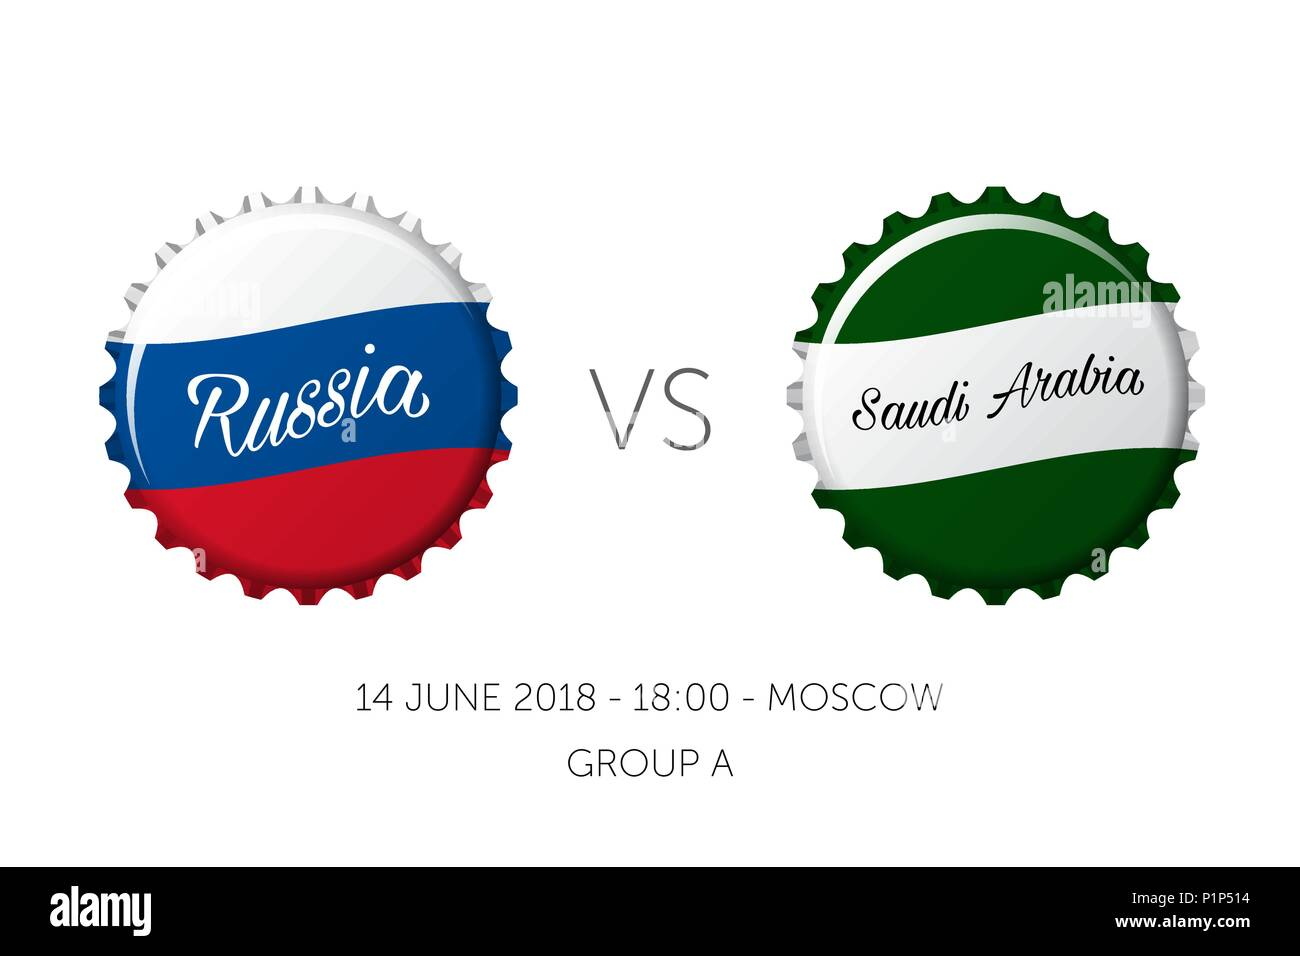 Soccer championship - Russia VS Saudi Arabia - 14 June - Stock Vector